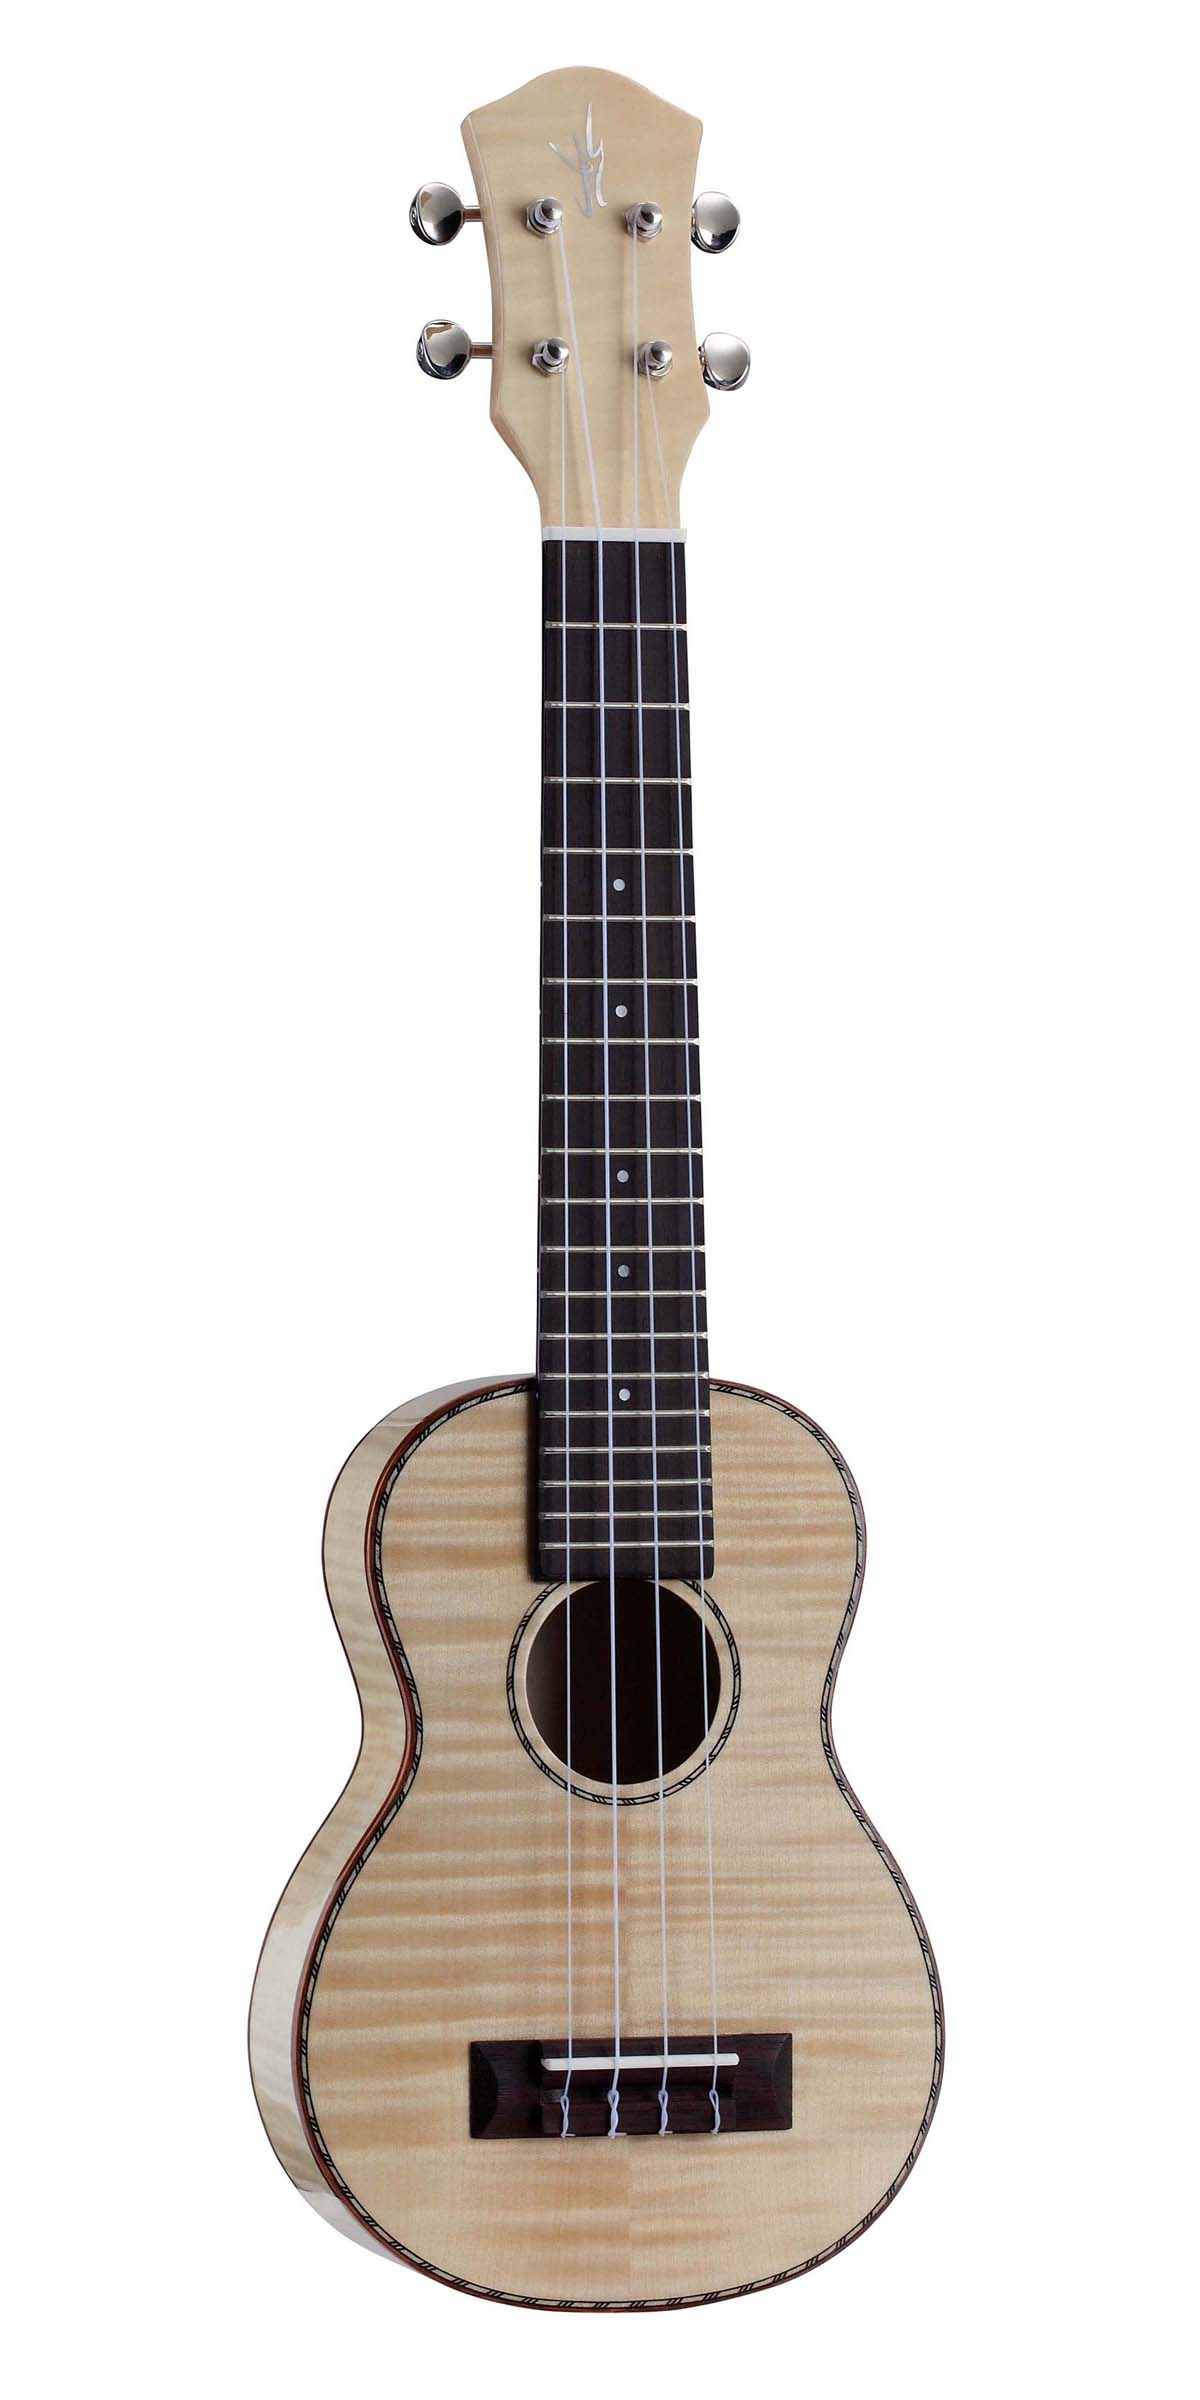 Flame Maple Plywood,Soprano Ukulele